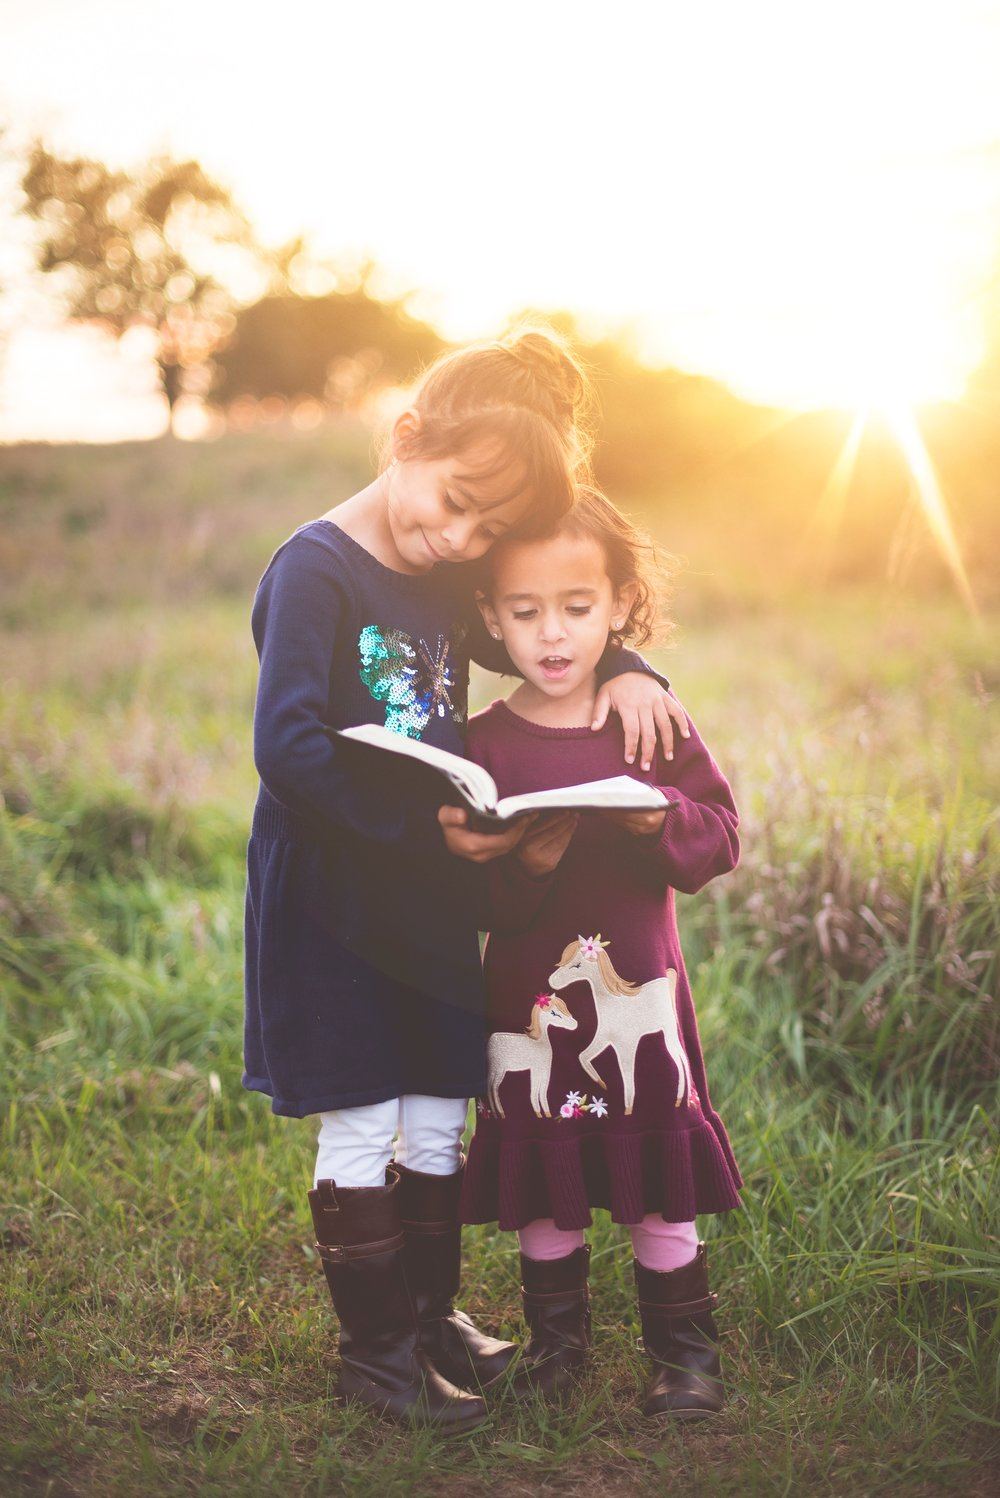 Recapture the joy of learning as a kid. - Photo by  Ben White  on  Unsplash